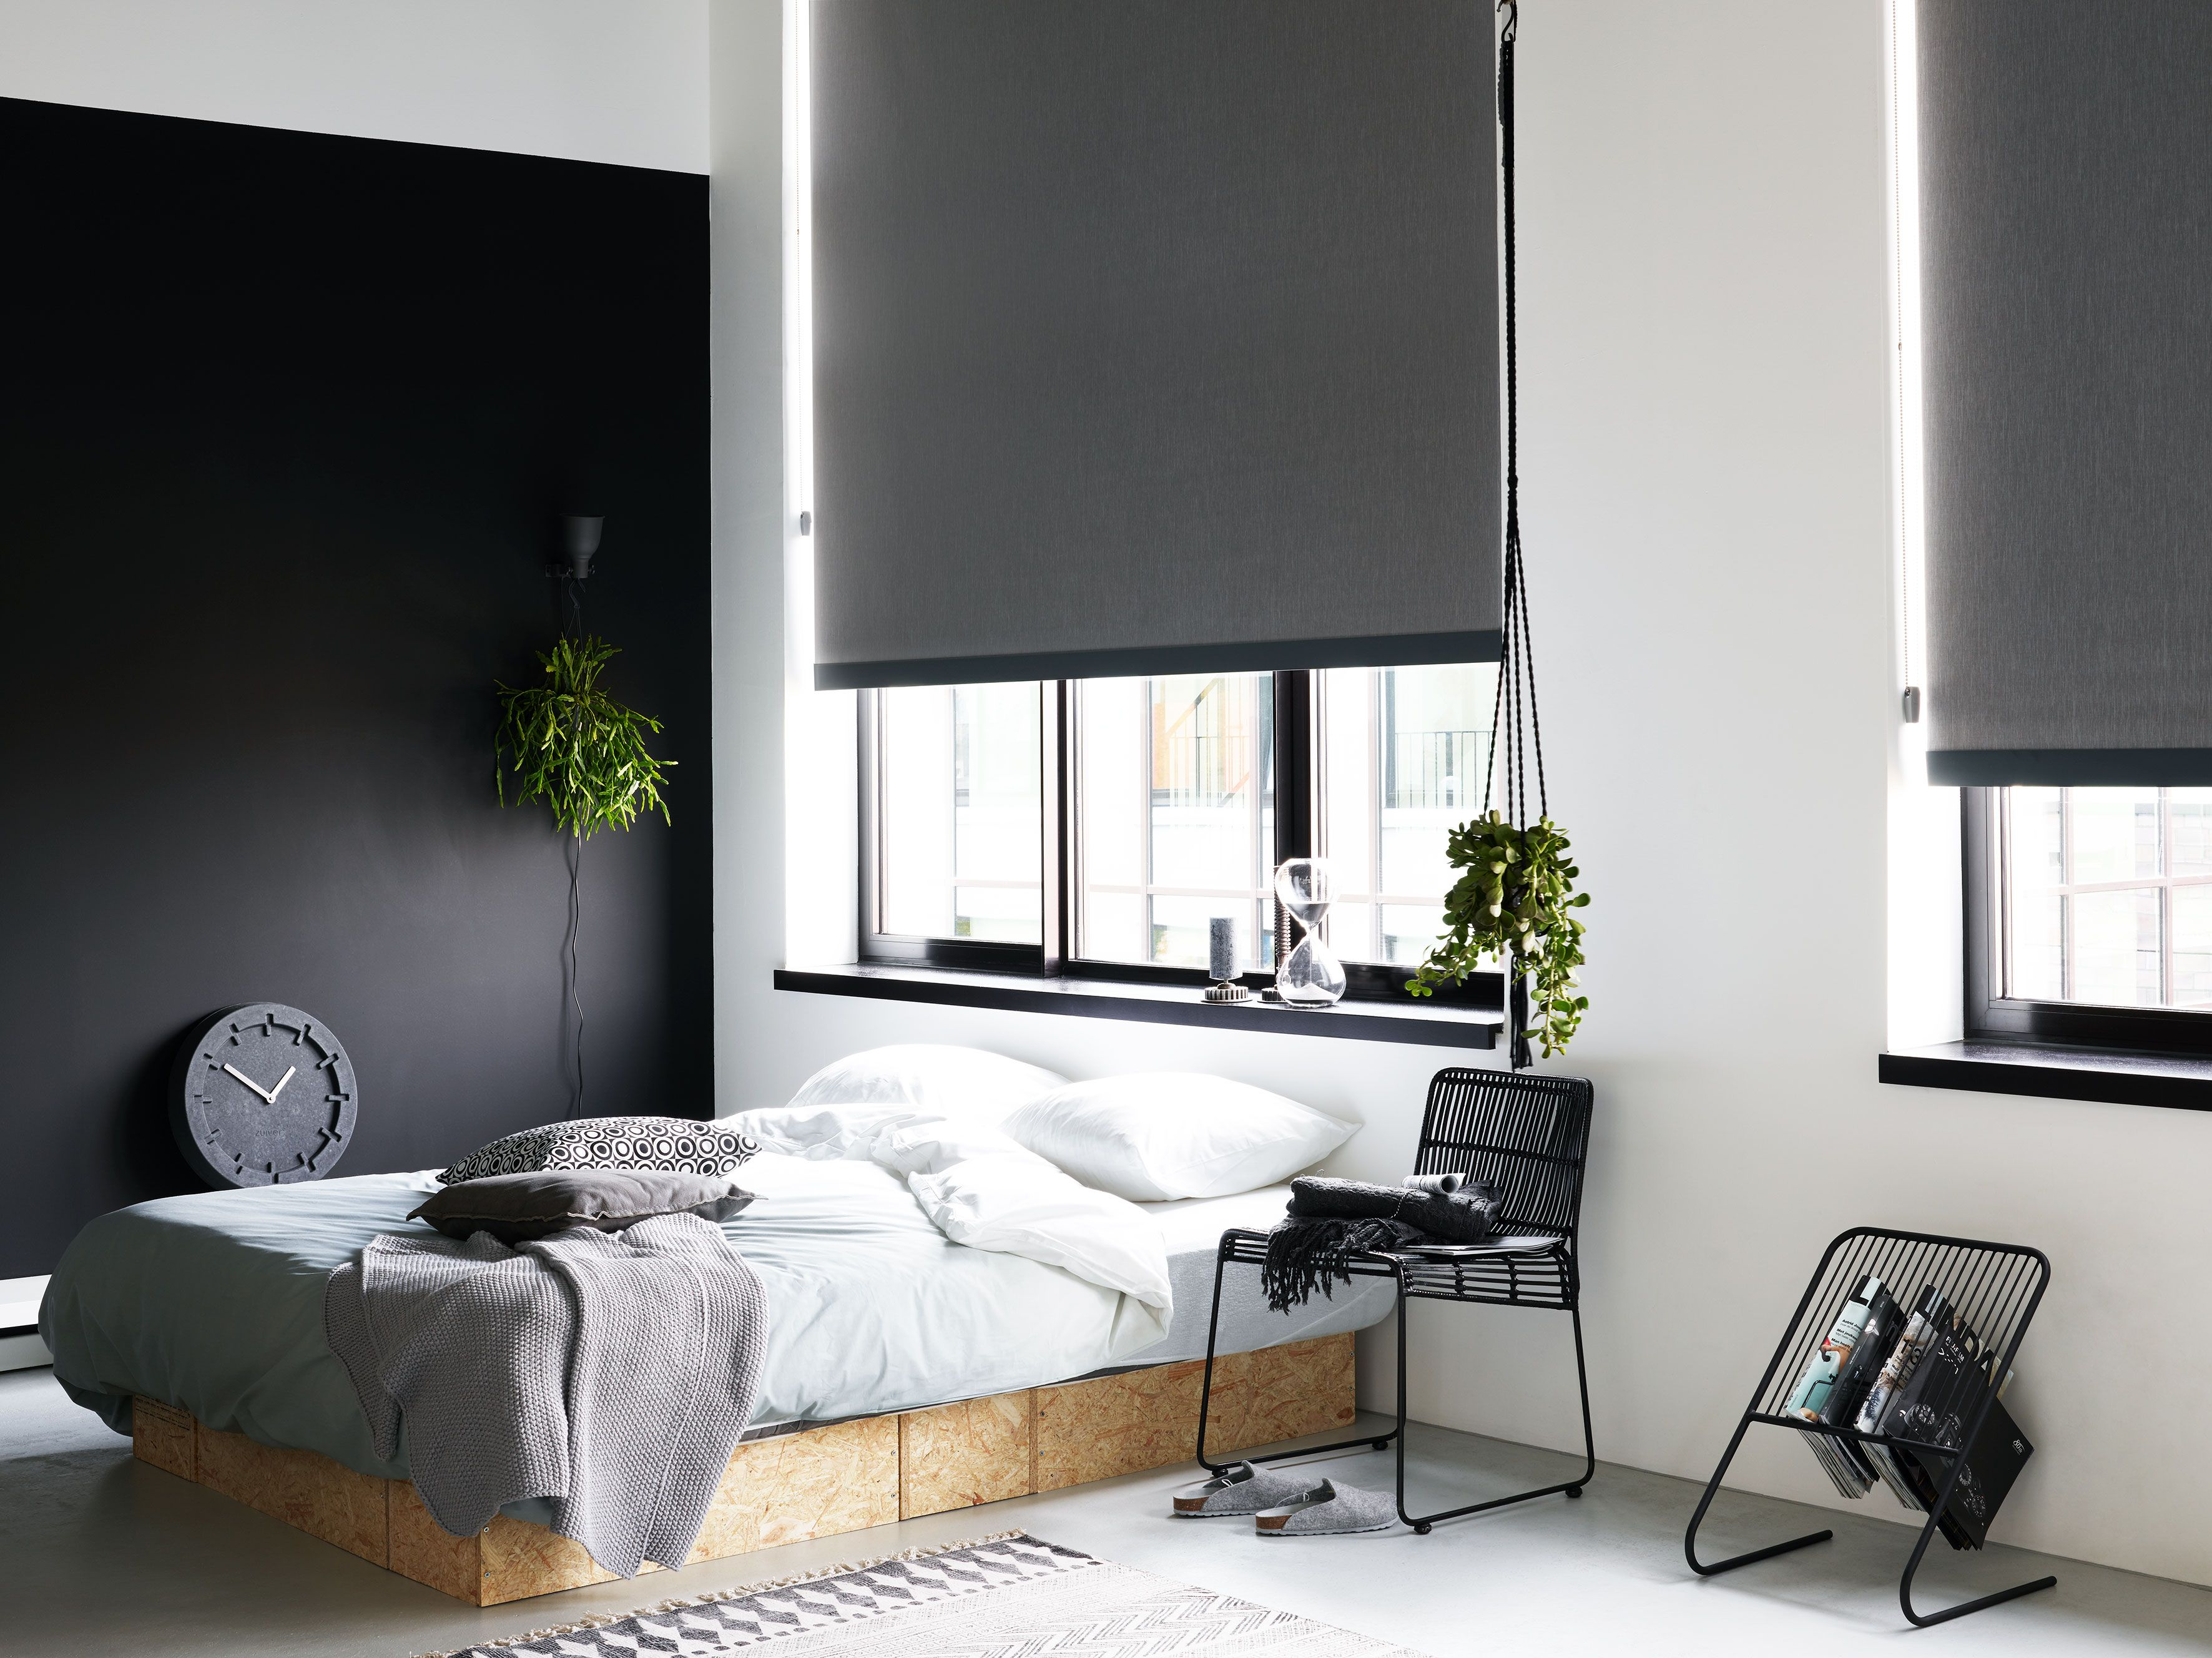 bw Scandinavian bedroom ideas that will inspire you to remodel